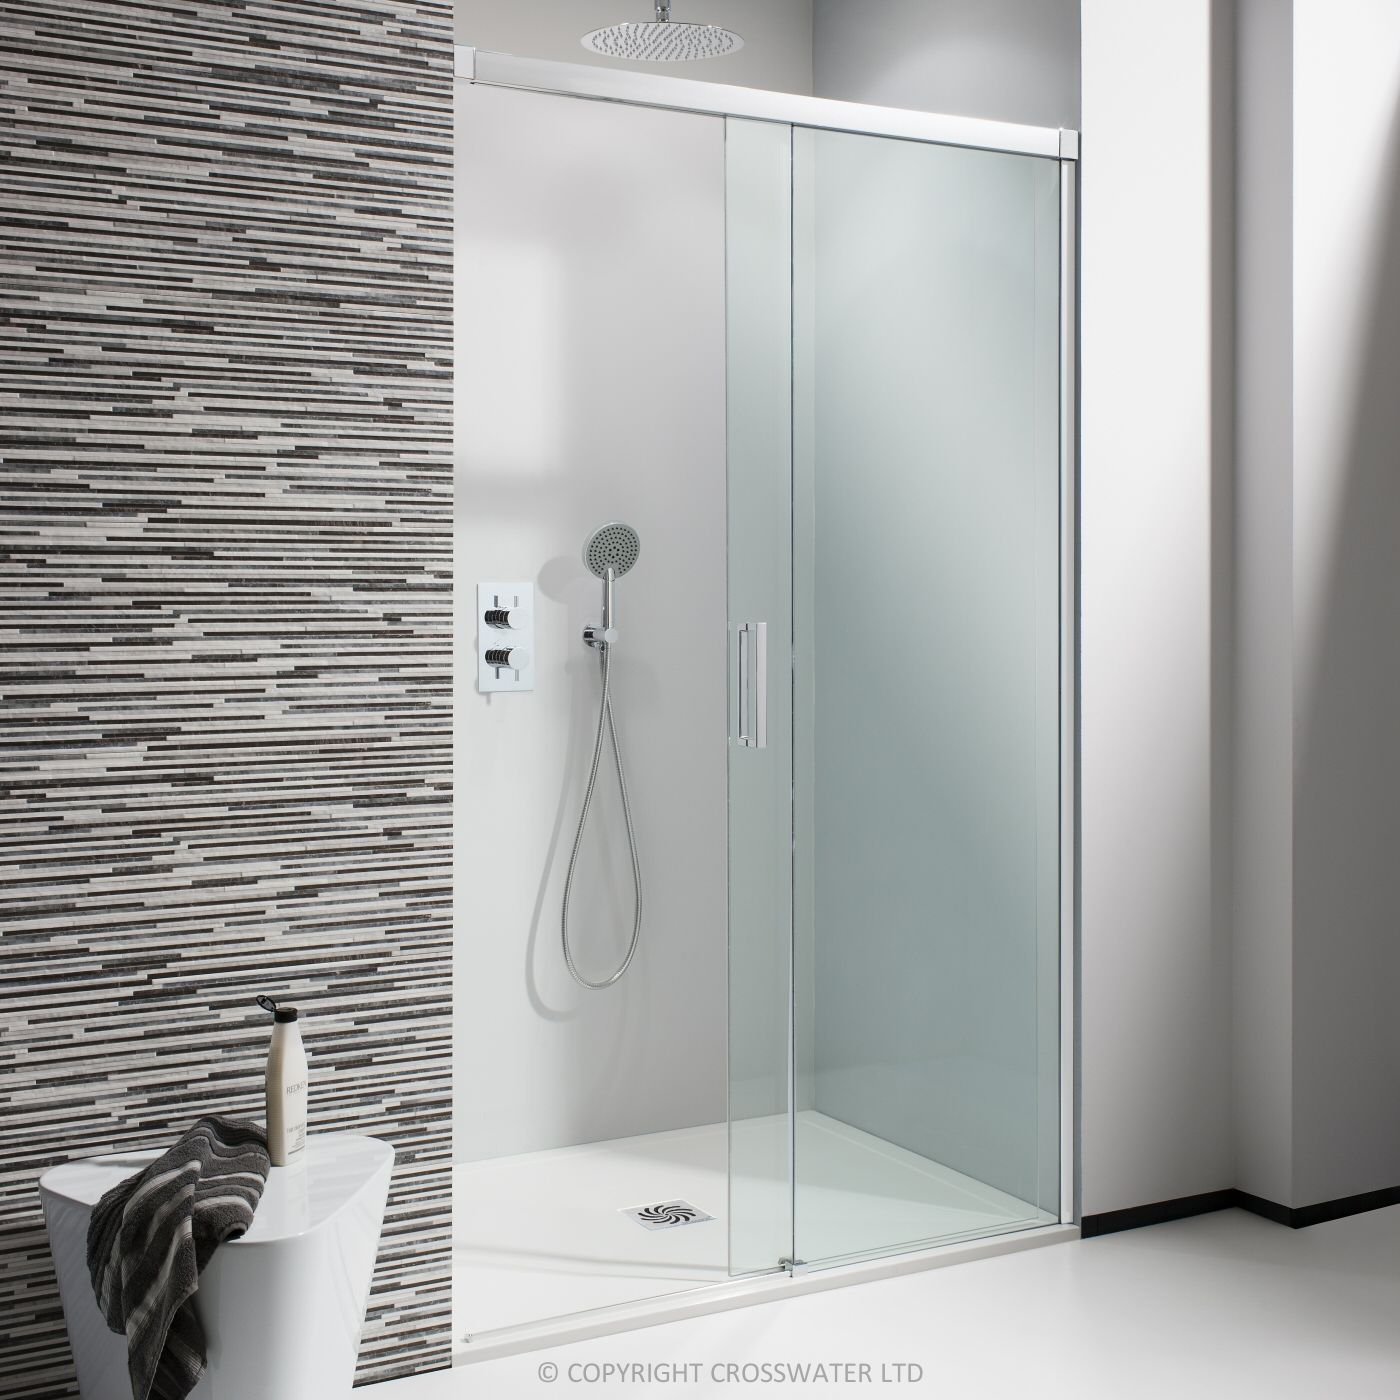 Simpsons 1200mm Design Semi Frameless Soft Close Slider Sliding Shower Door Shower Doors Shower Enclosure